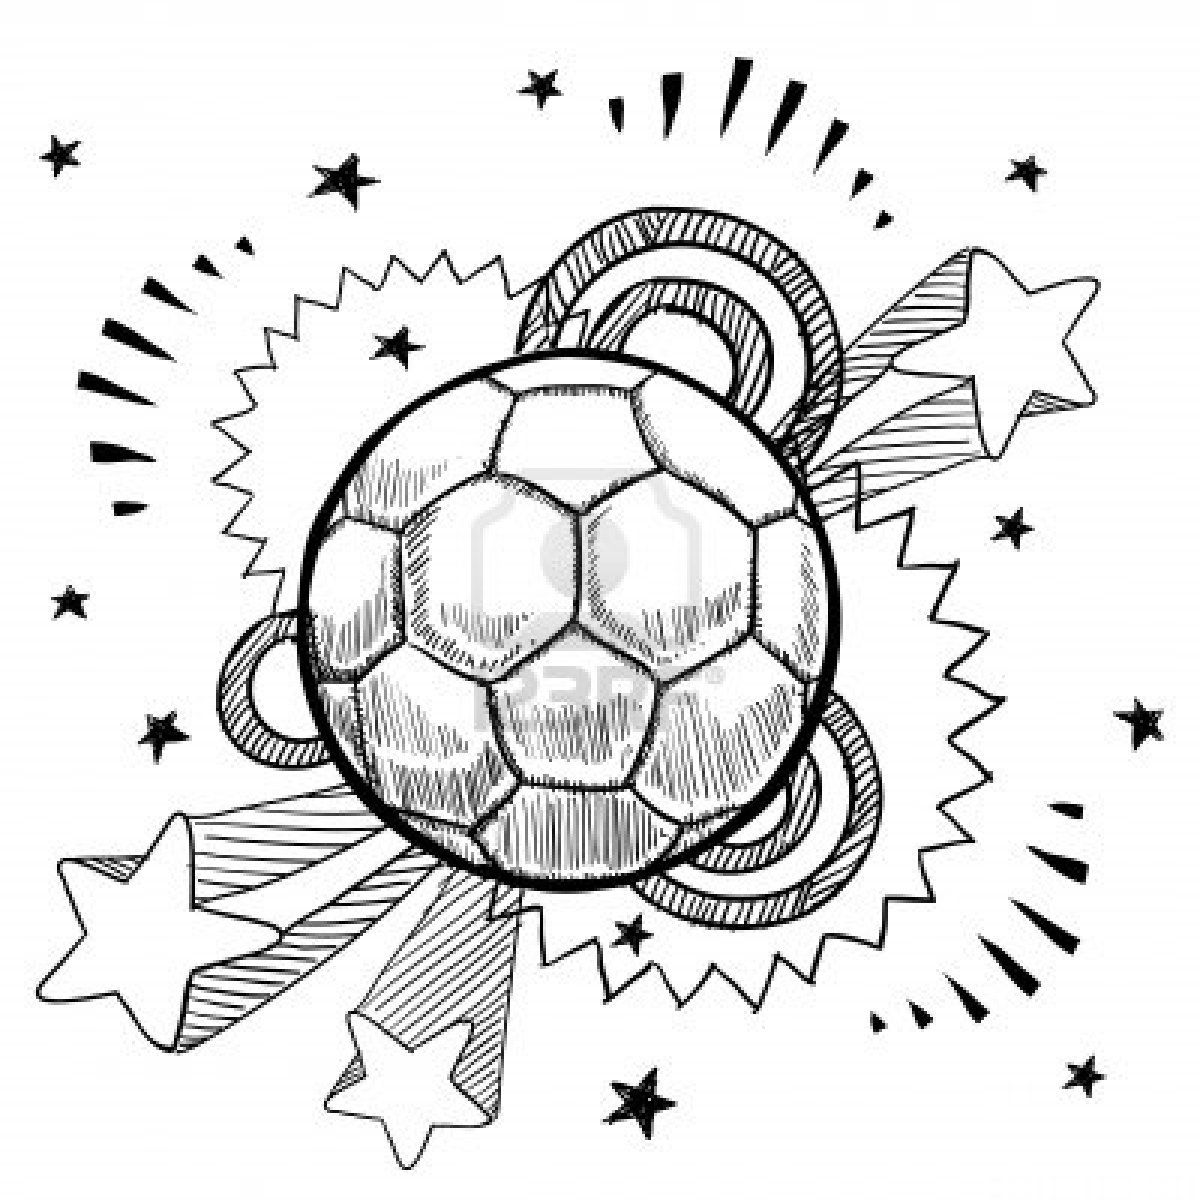 Doodle Style Soccer Or Futbol Sports Illustration With Retro Sports Drawings Sport Illustration Doodles